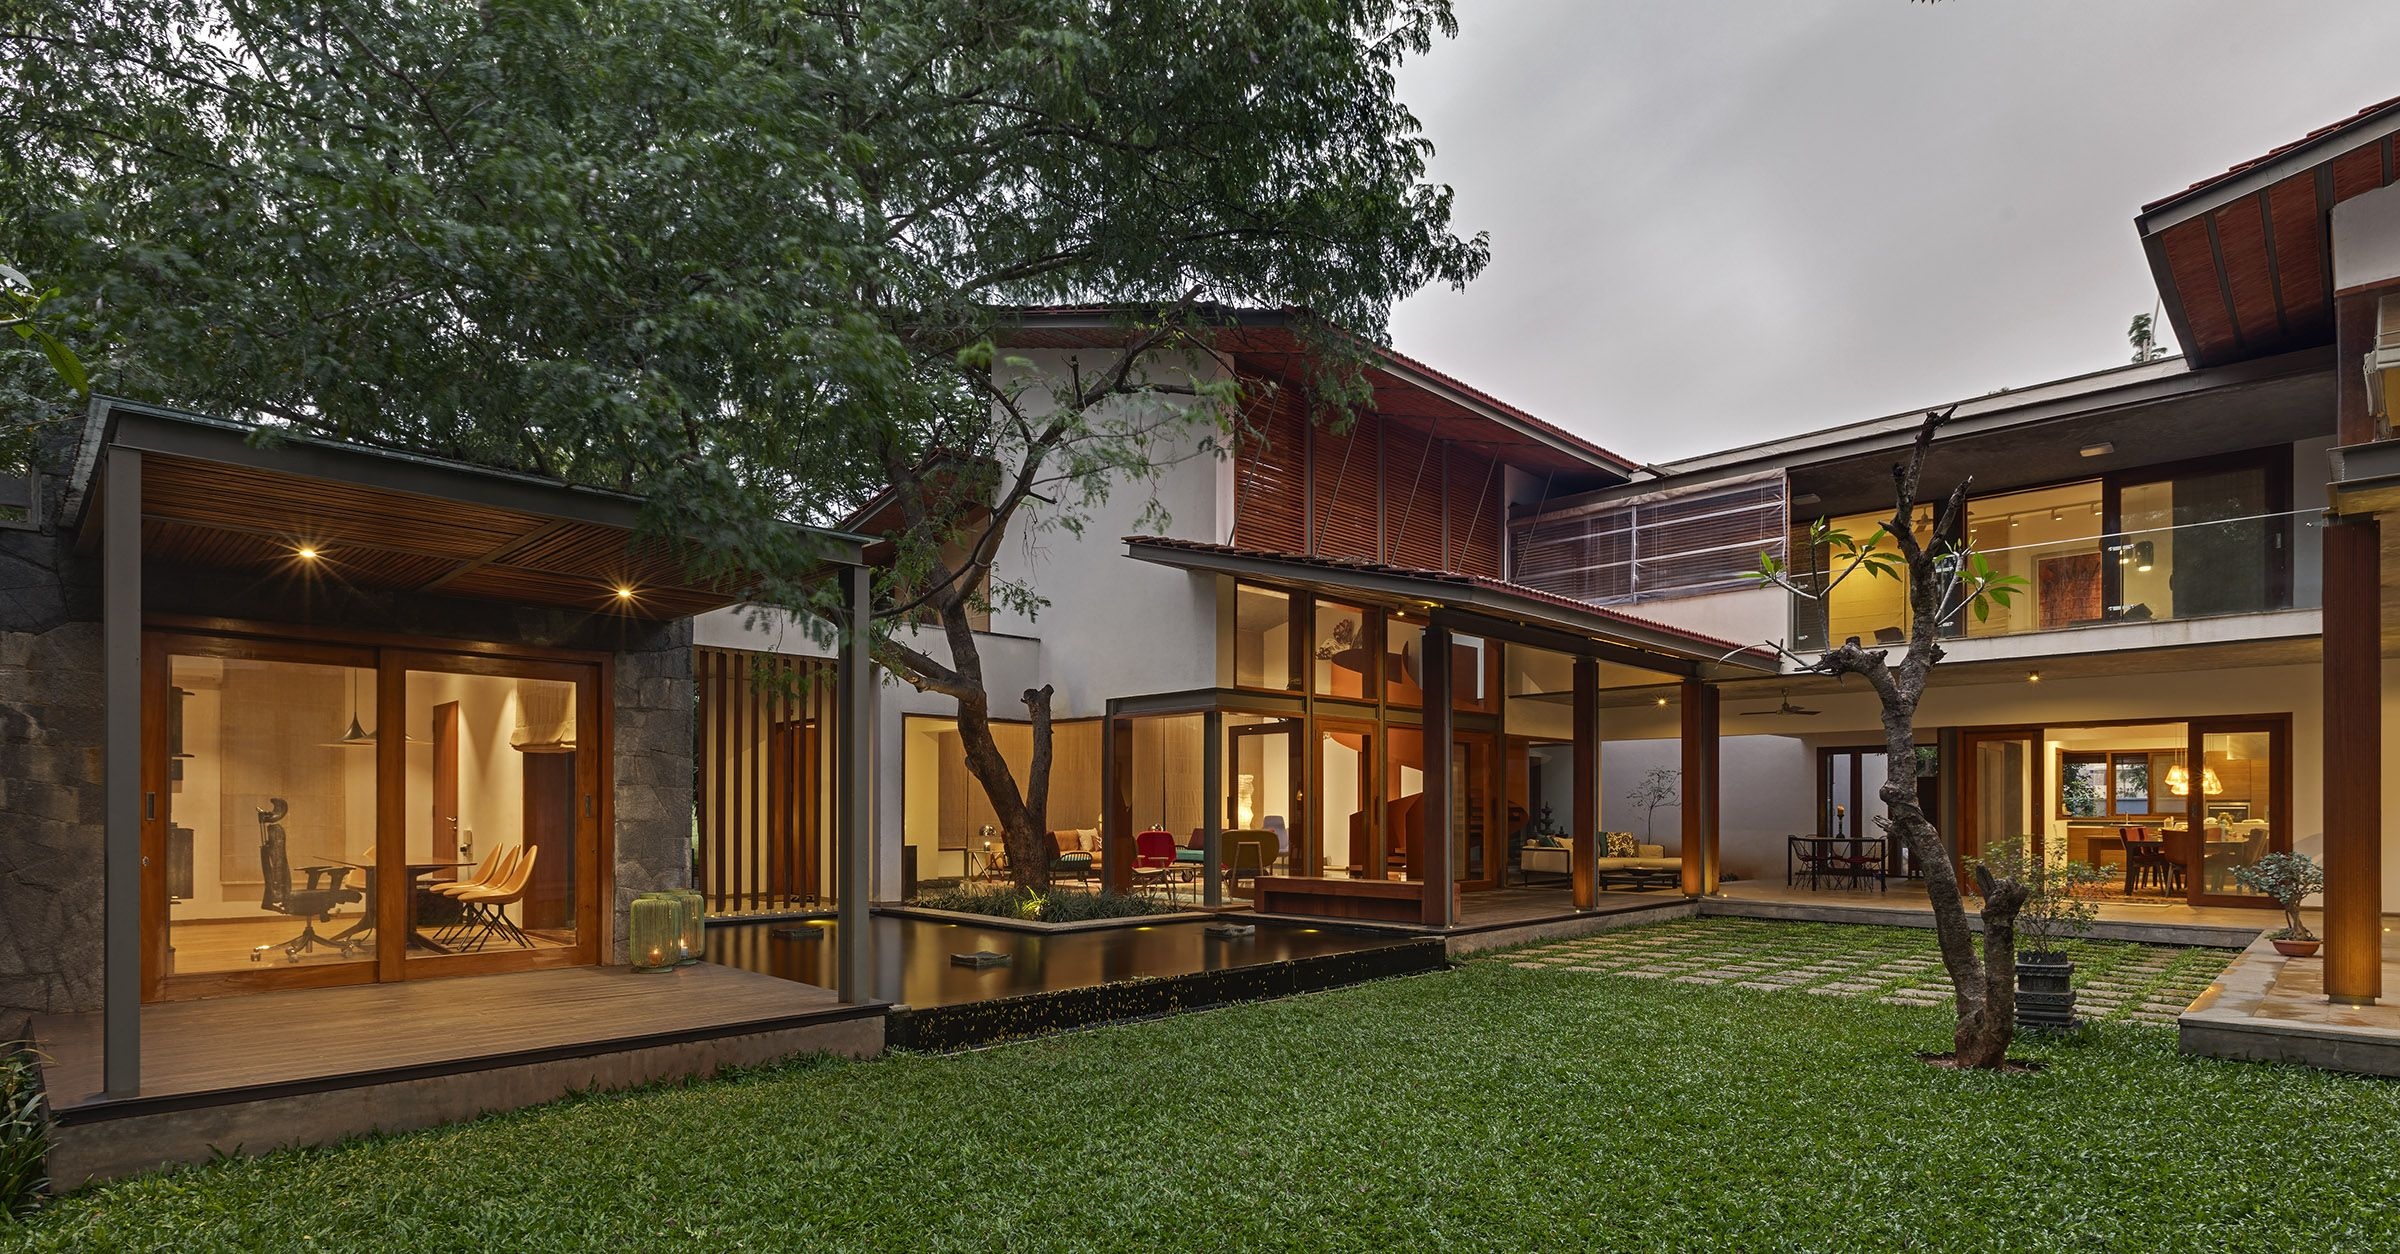 Krishnan house the 16000 sft site of the krishnan house had several existing trees and we envisioned a relatively low slung architectural expression that